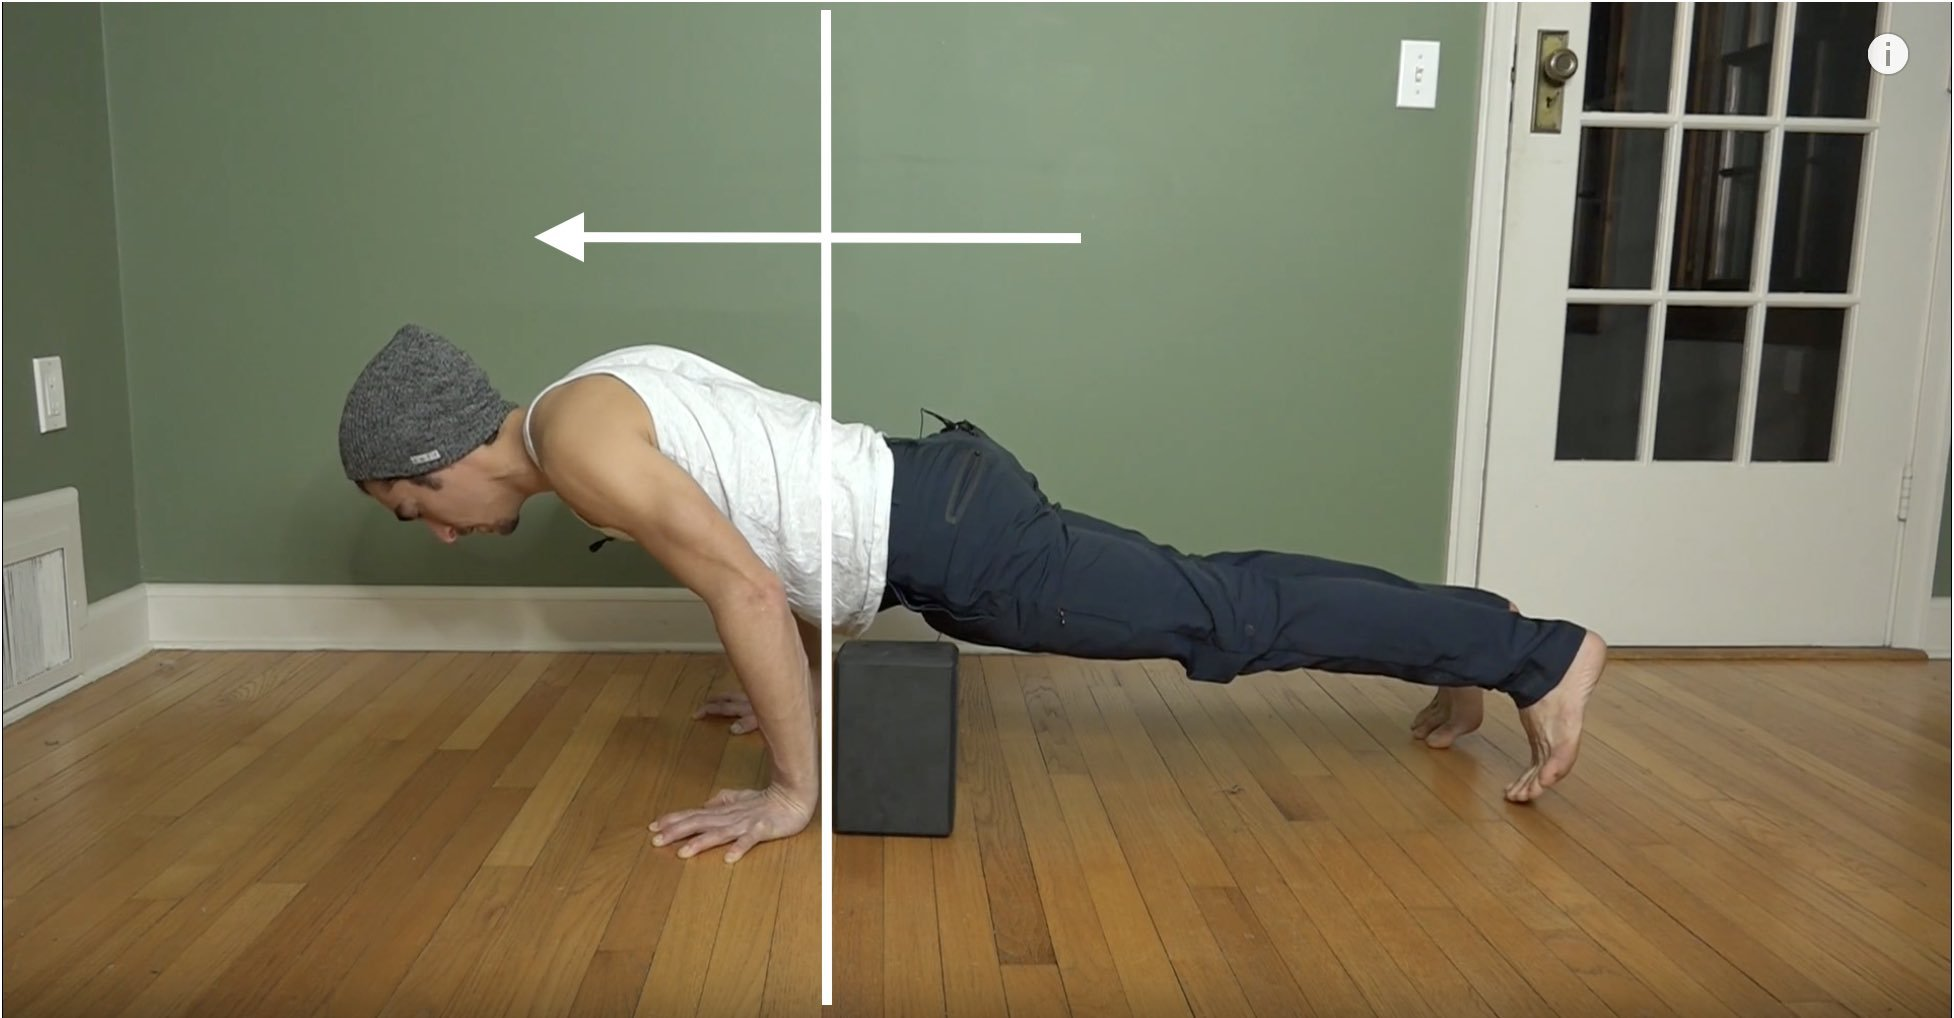 chaturanga with block for wrist strength